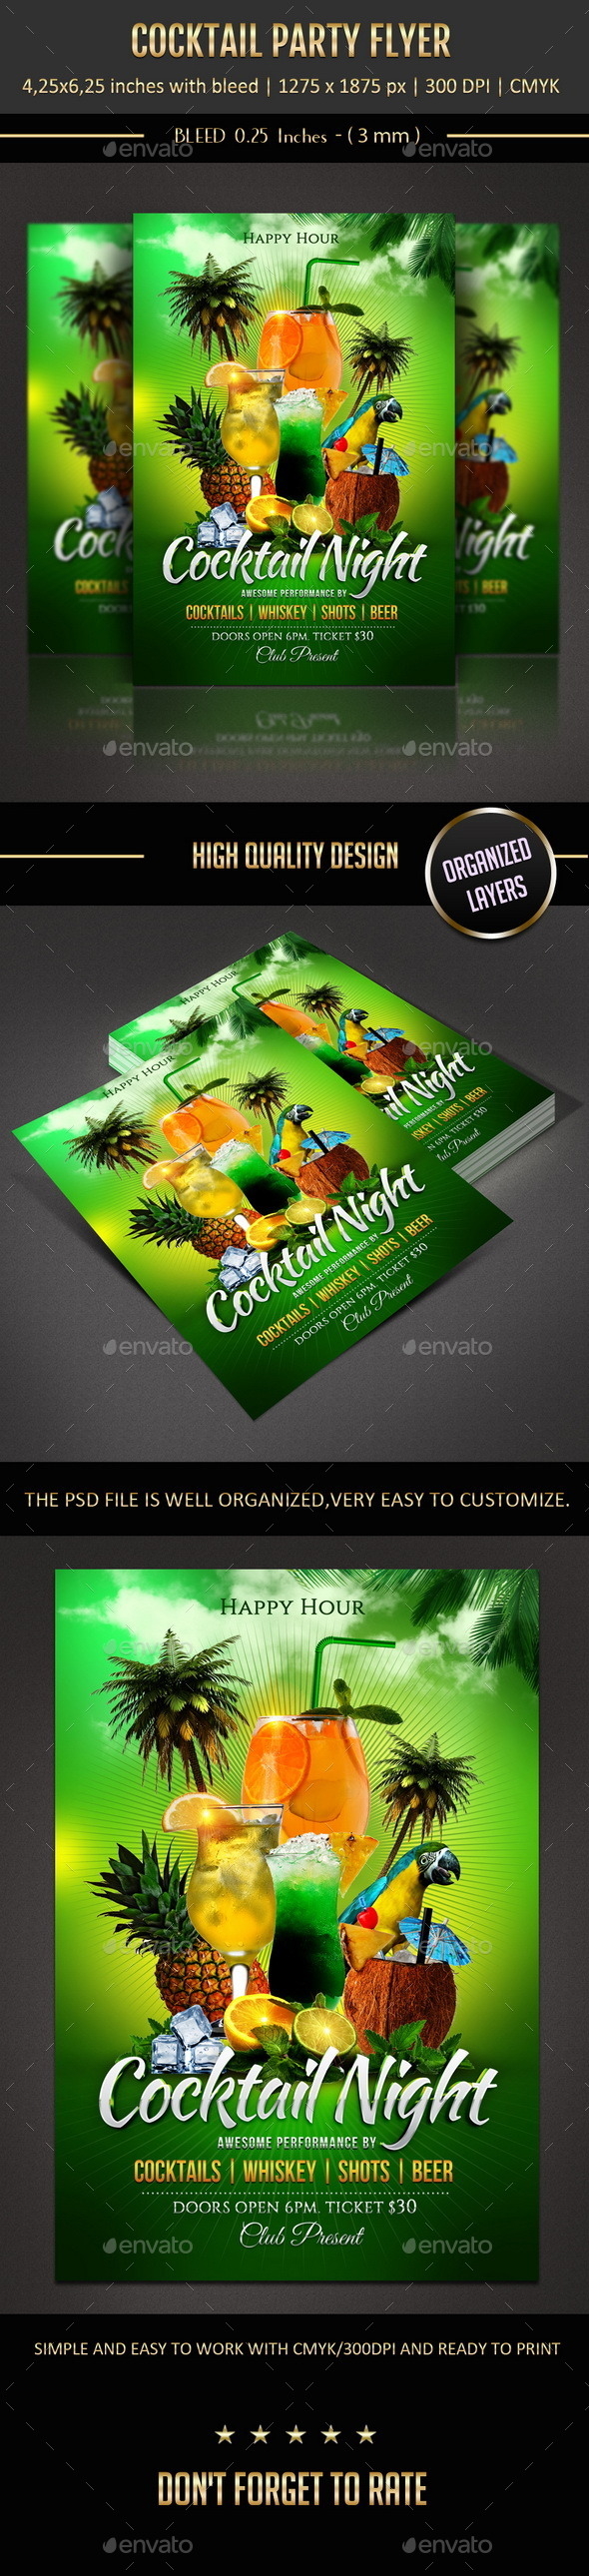 GraphicRiver Cocktail Party Flyer 10440530